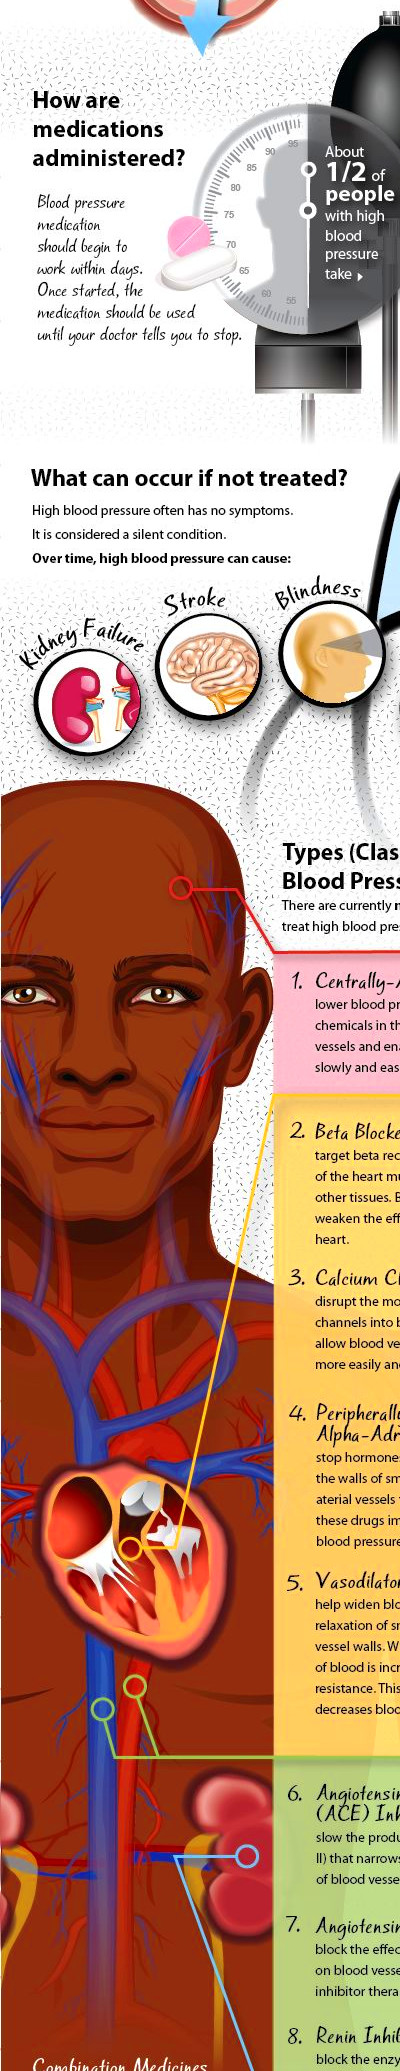 1000+ images about NCLEX Study Guide on Pinterest ...